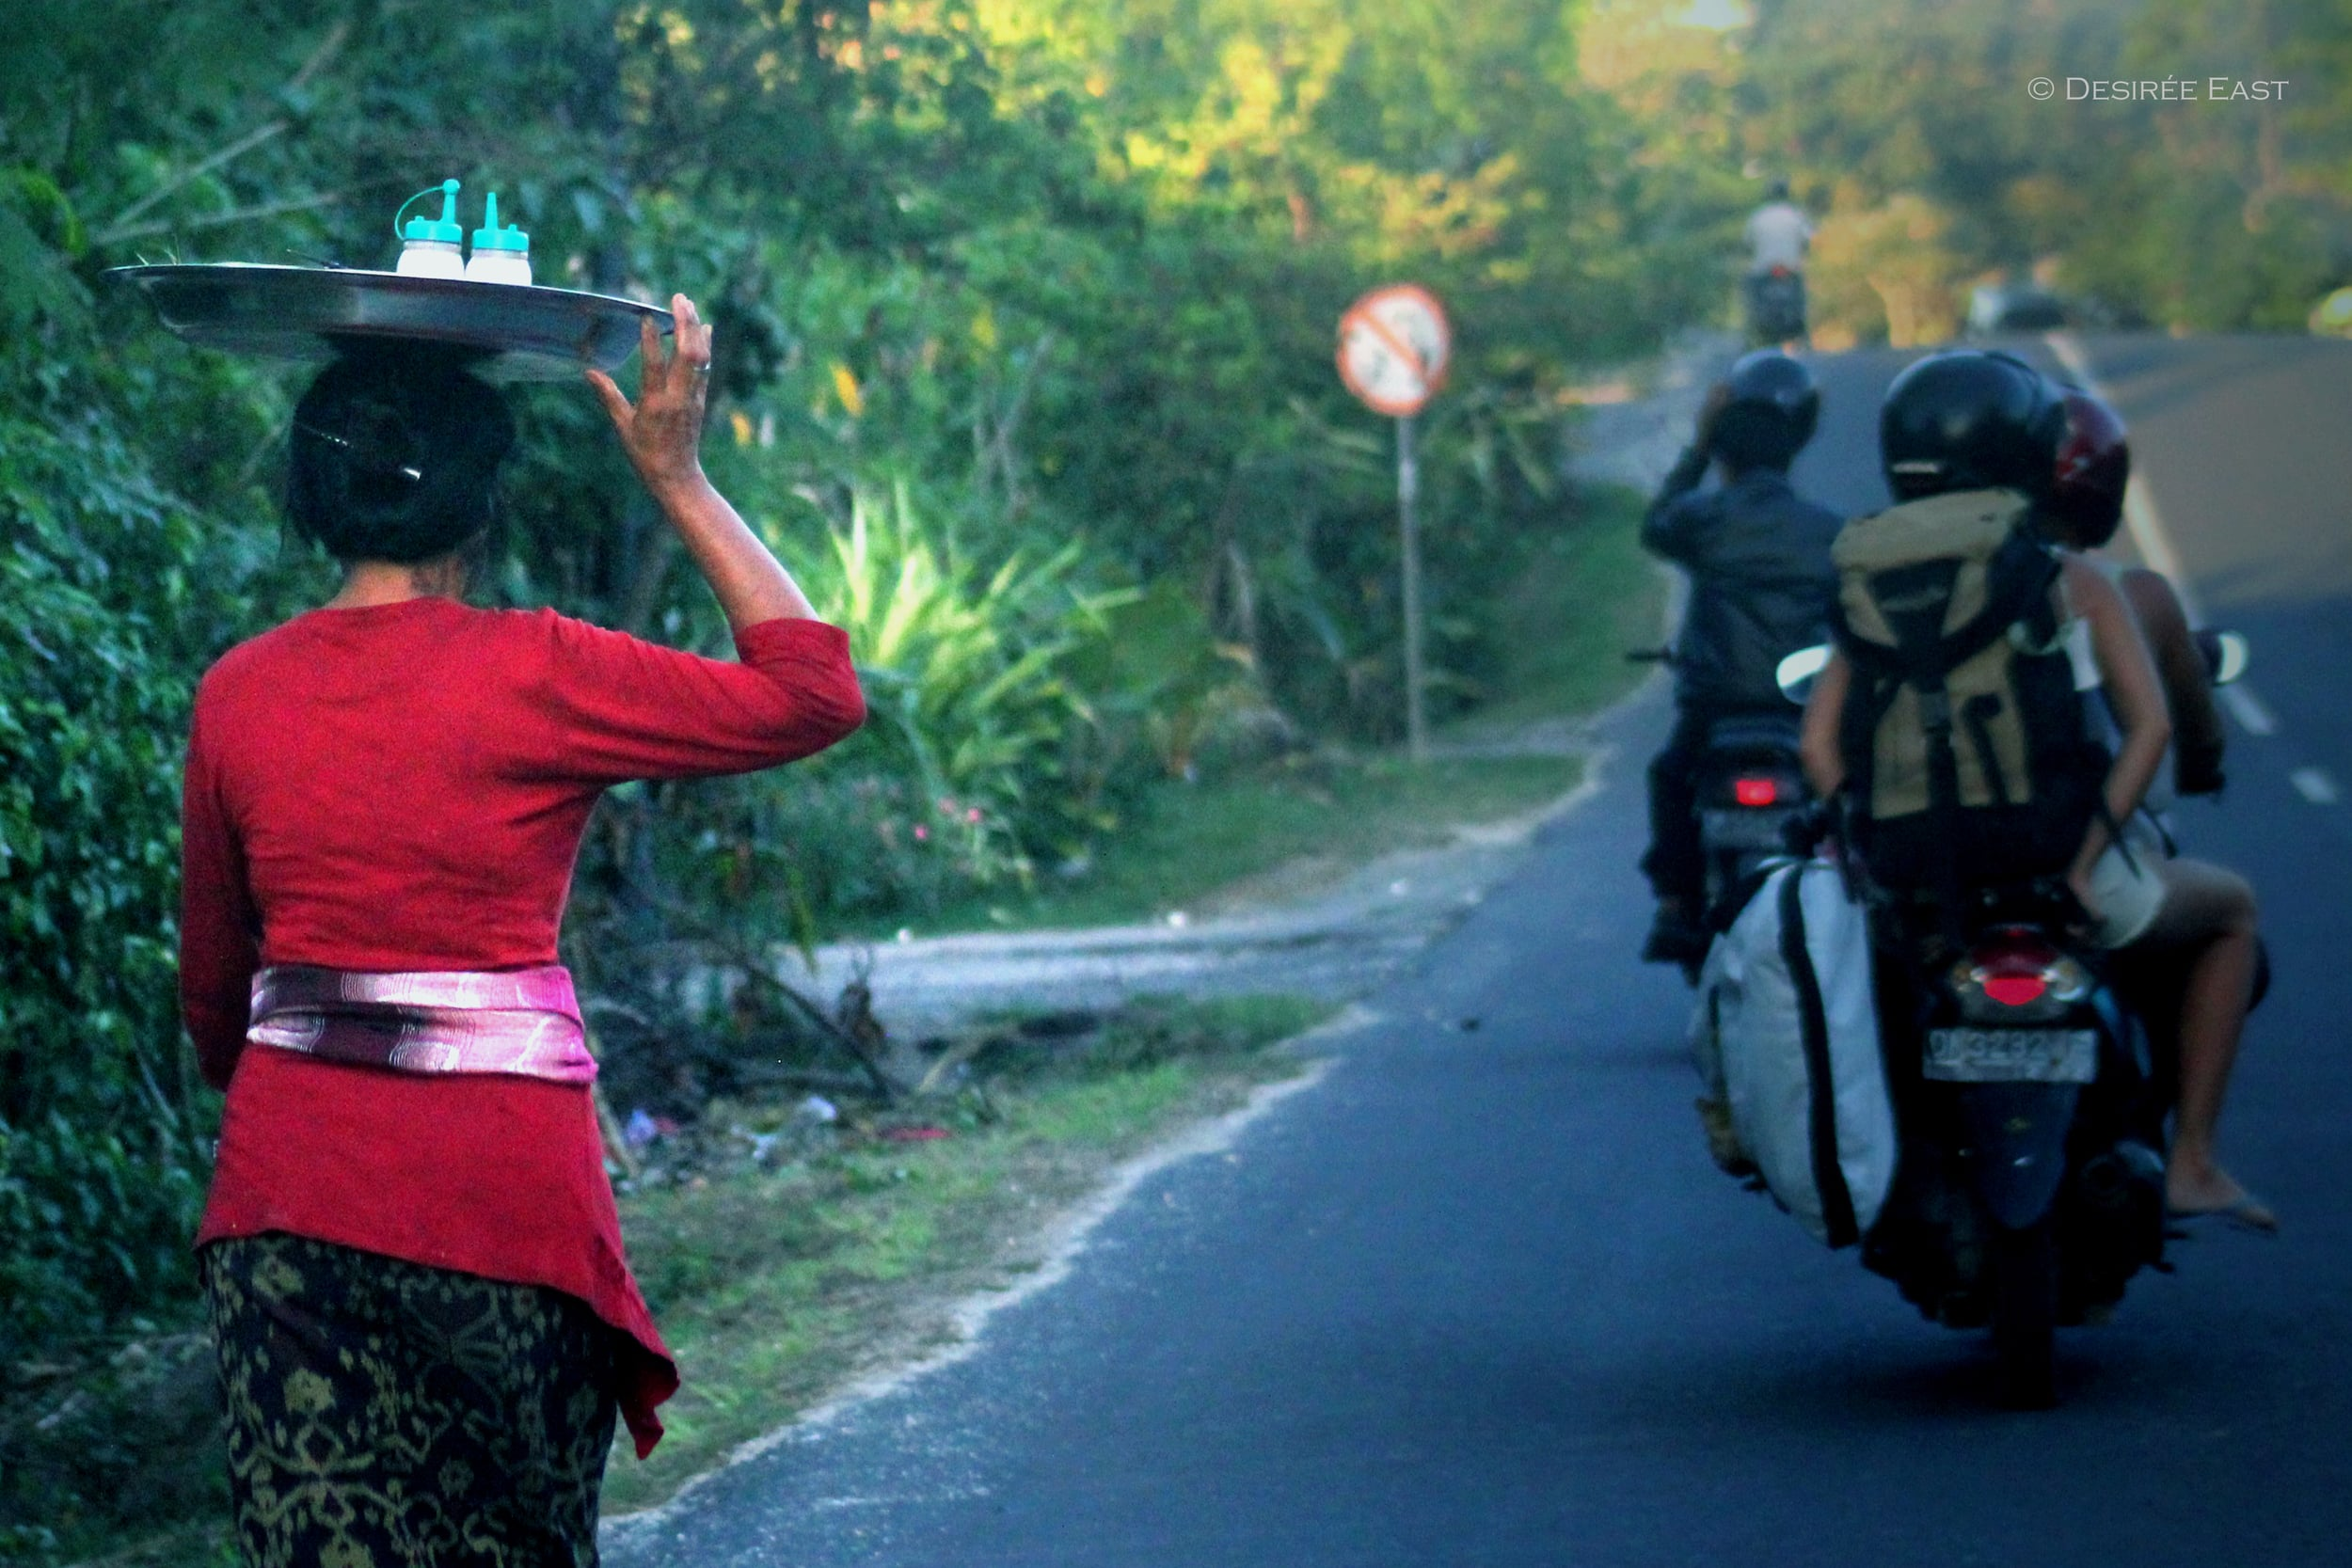 balinese woman in red. bali, indonesia. photo by desiree east